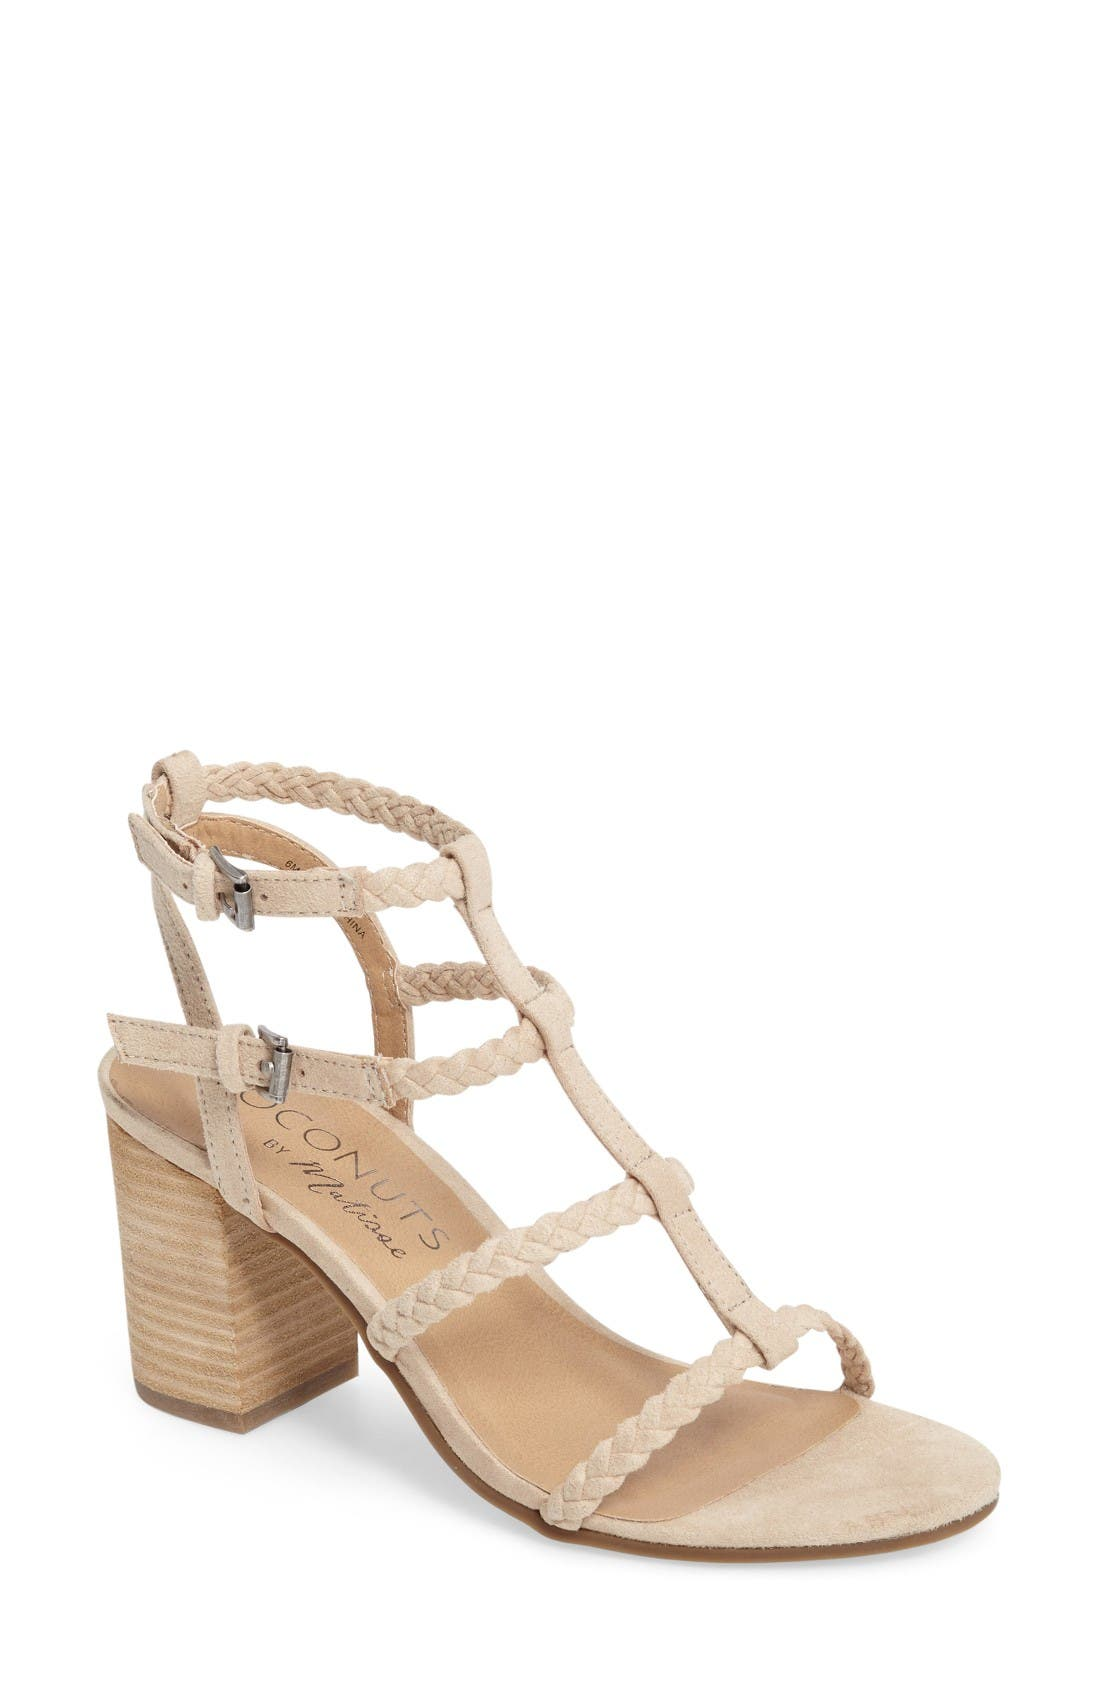 Alternate Image 1 Selected - Coconuts by Matisse Cora Sandal (Women)